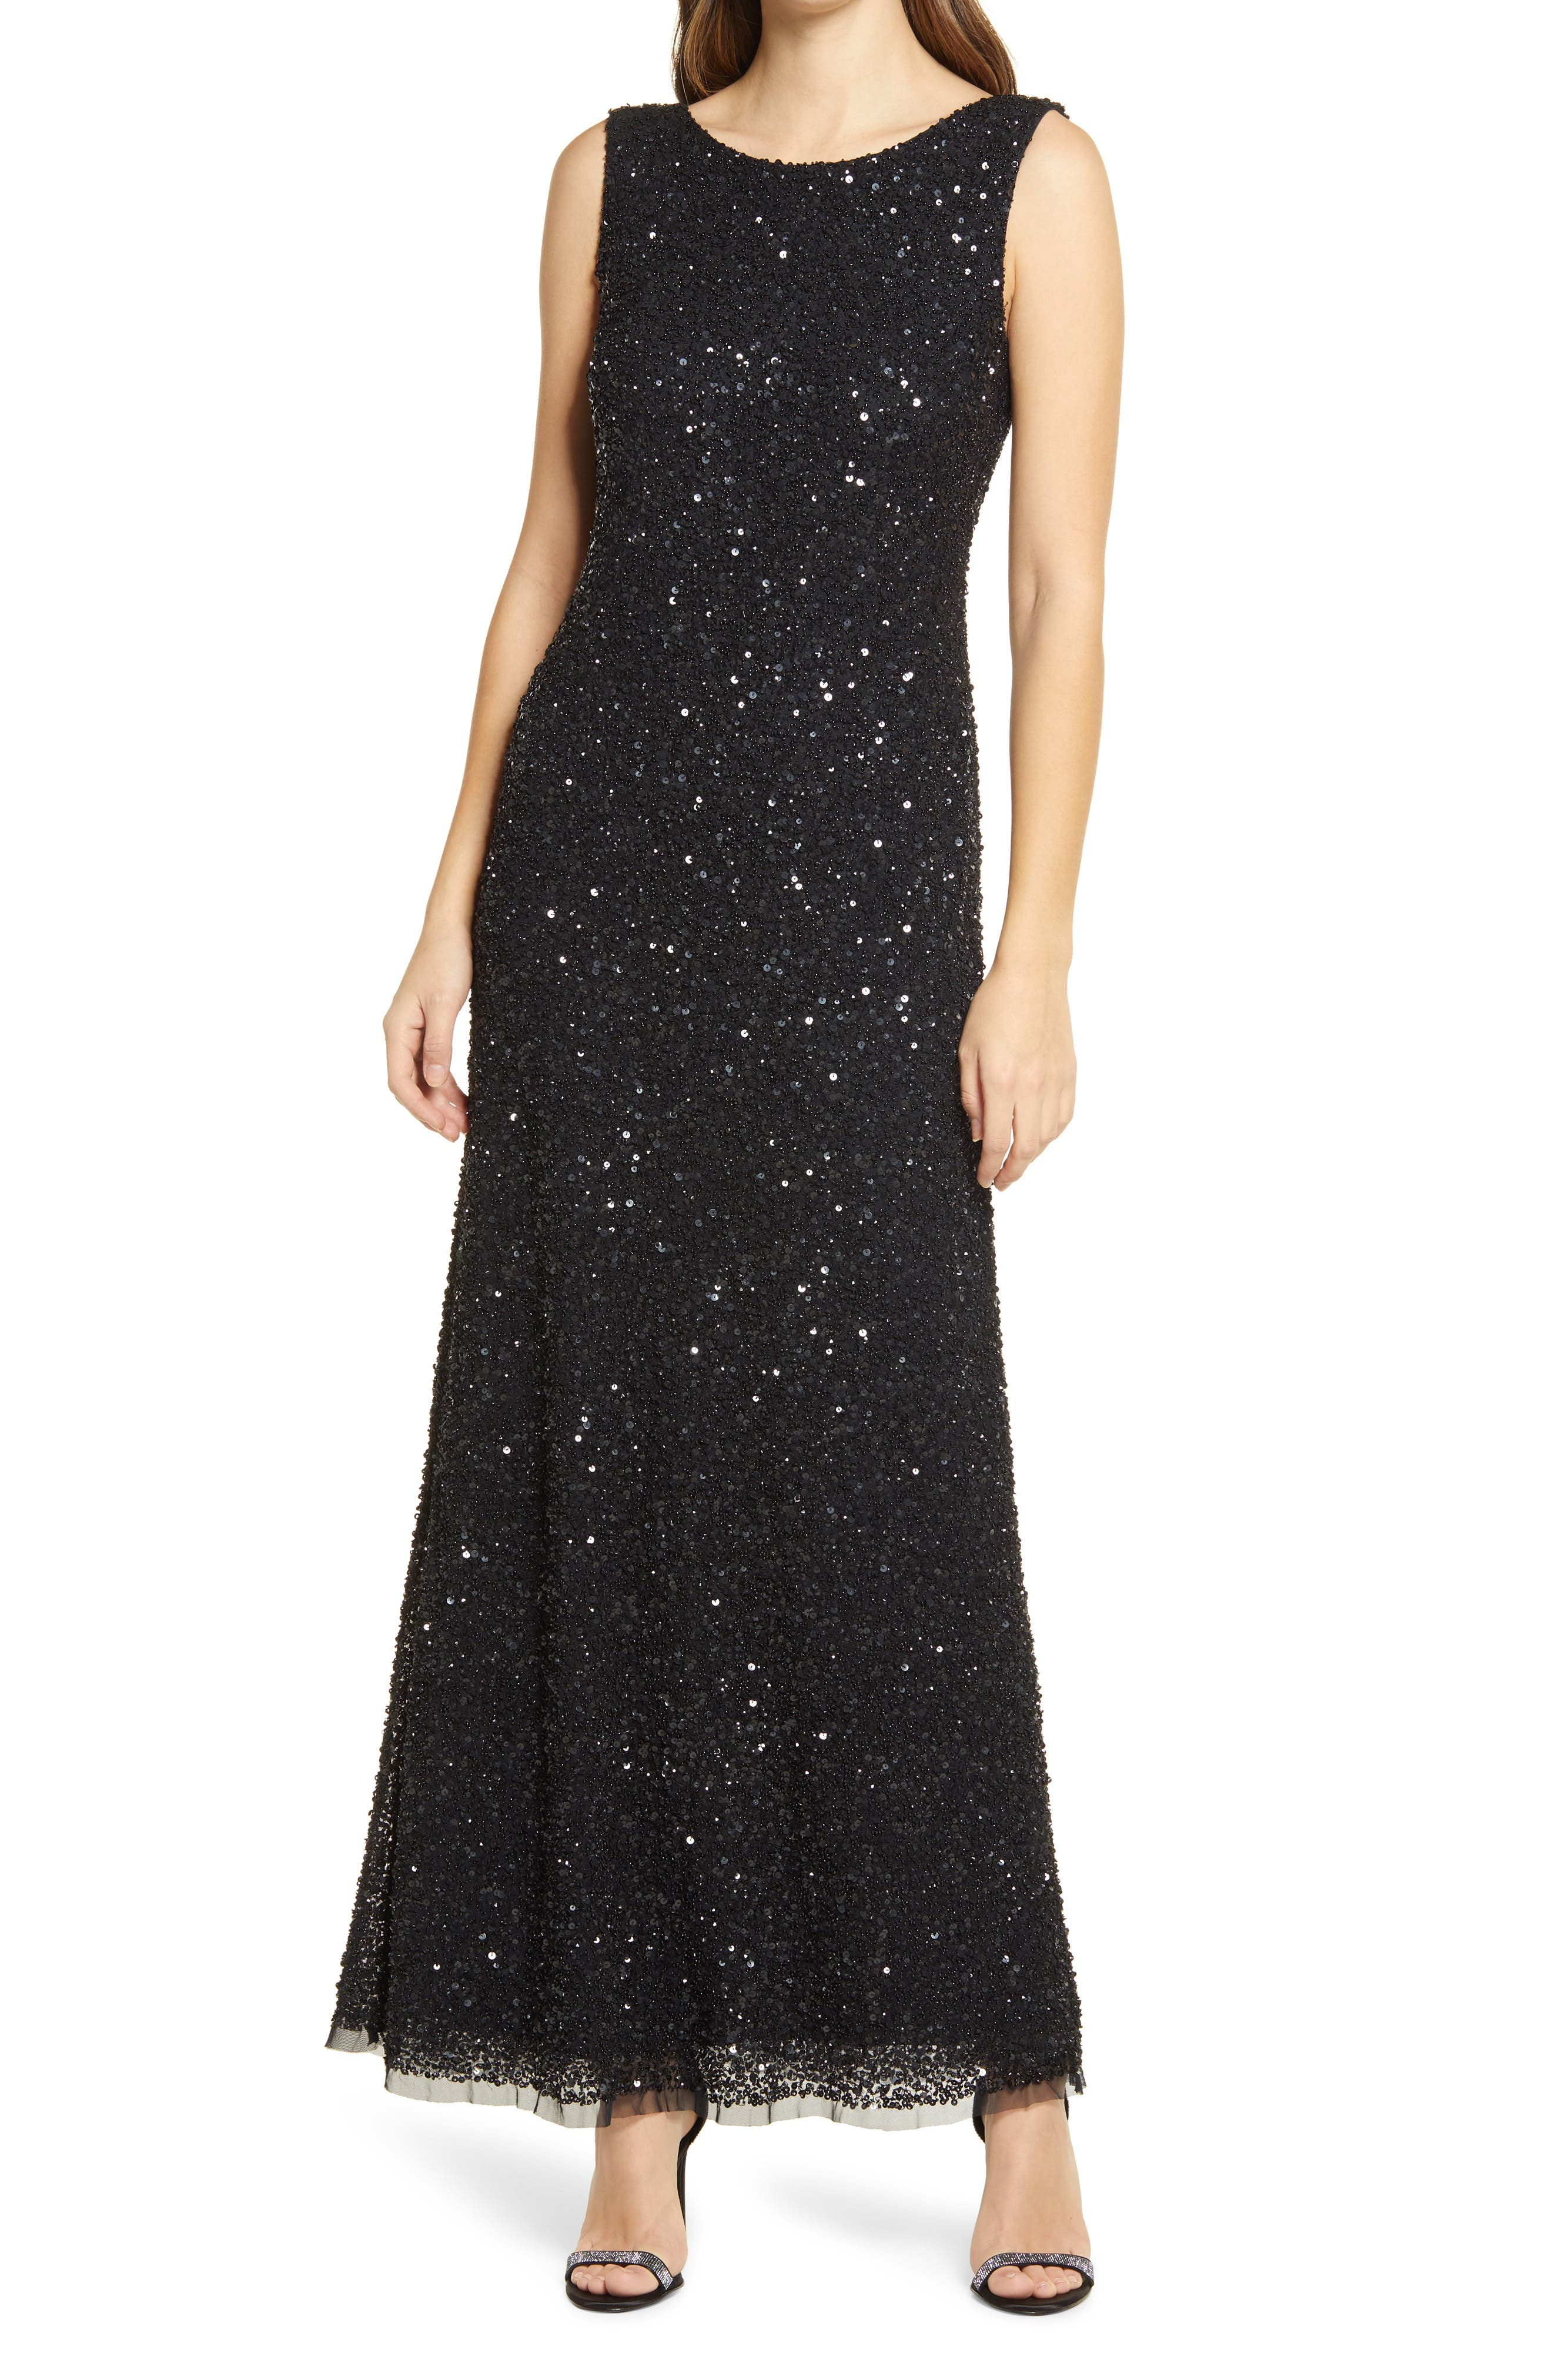 Great Gatsby Dress – Great Gatsby Dresses for Sale Womens Pisarro Nights Sequin Mesh A-Line Gown Size 14 - Black $278.00 AT vintagedancer.com